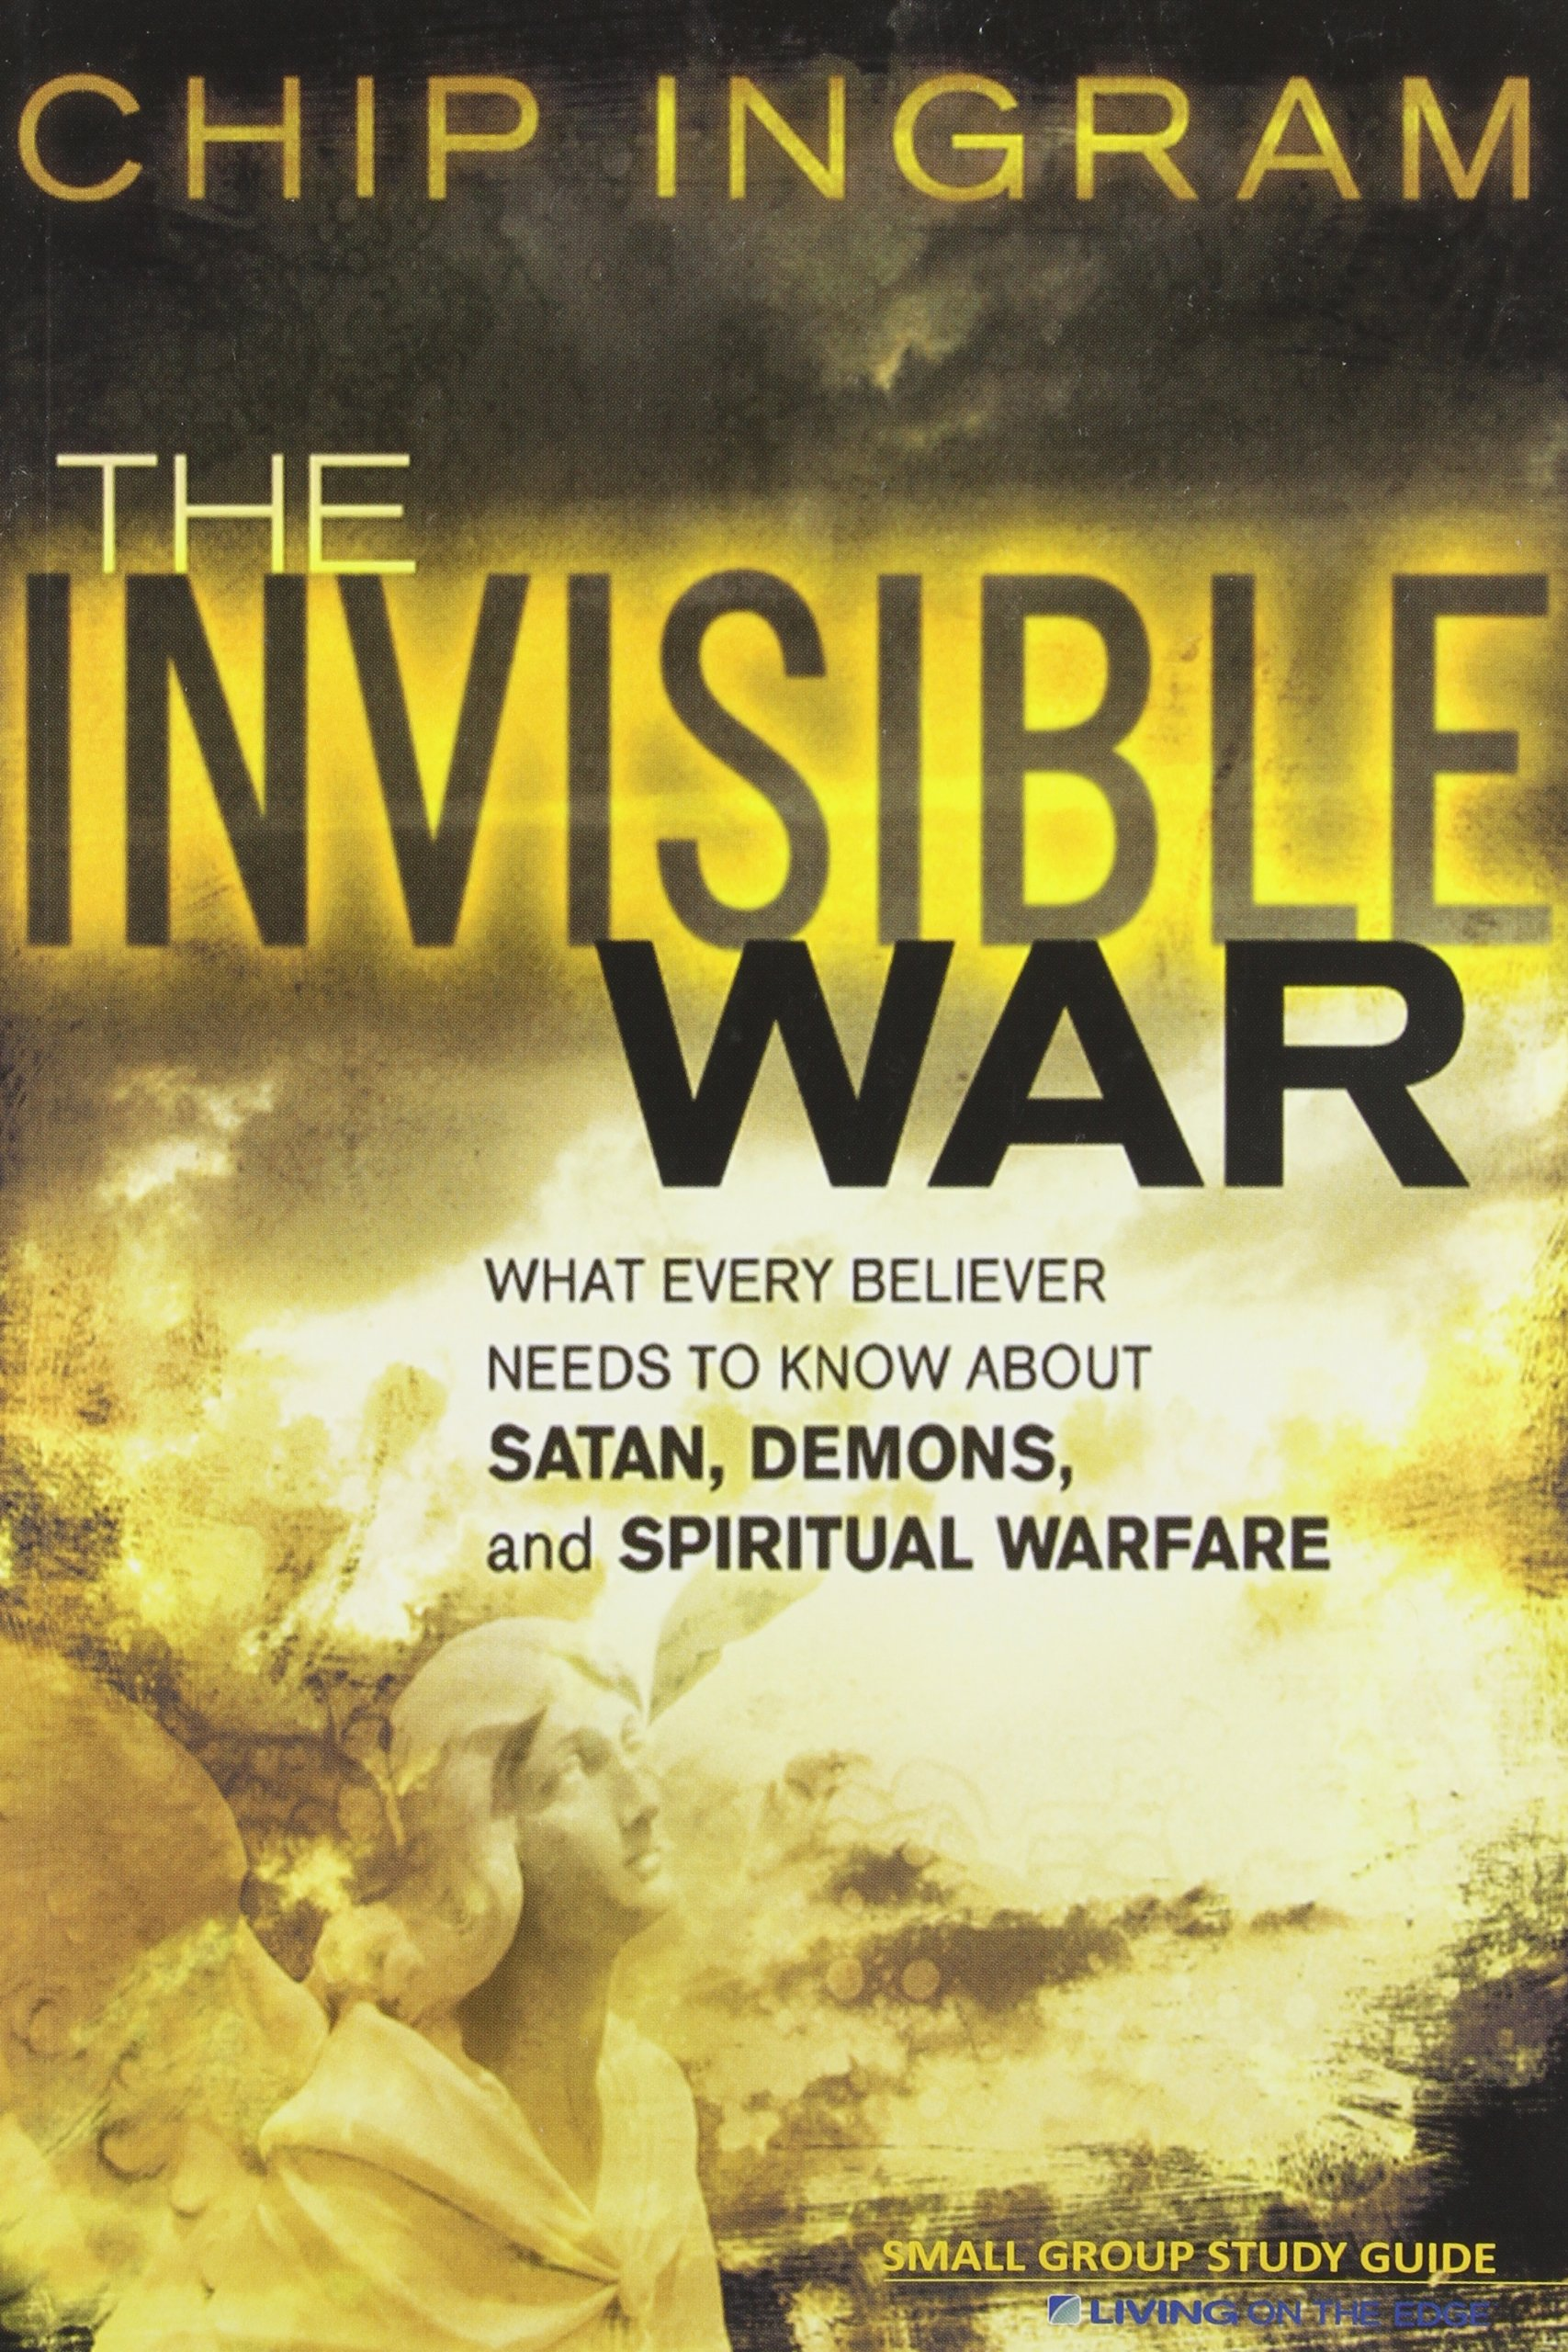 the invisible war study guide what every believer needs to know rh amazon com Chip Ingram Bible Studies Chip Ingram DVD Studies